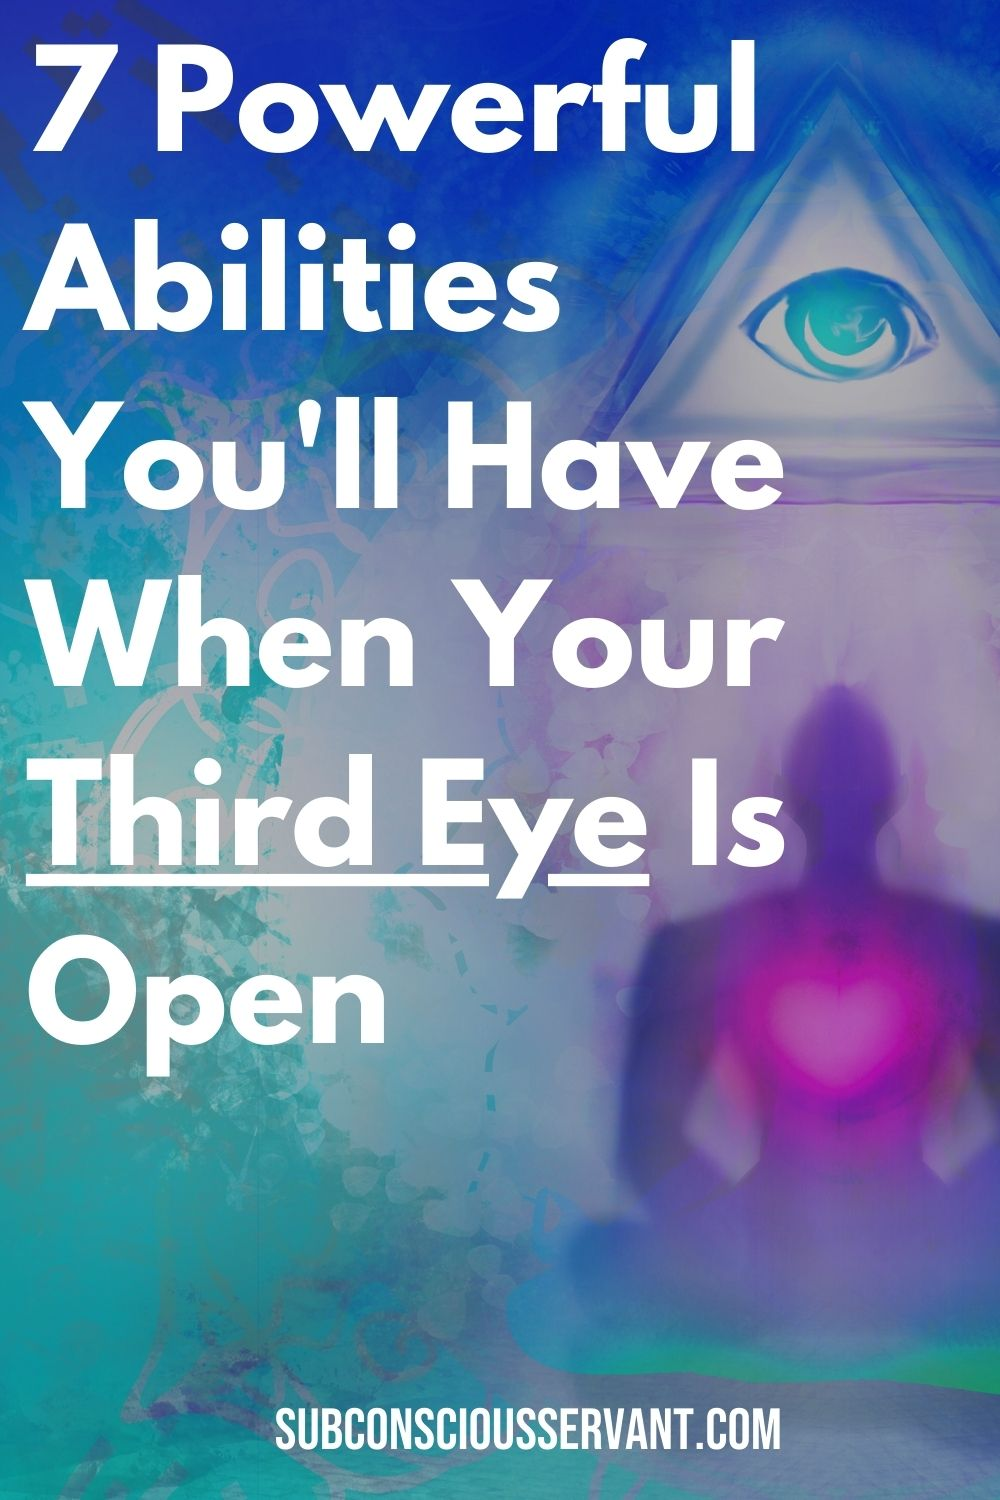 7 POWERFUL Abilities Of The Third Eye